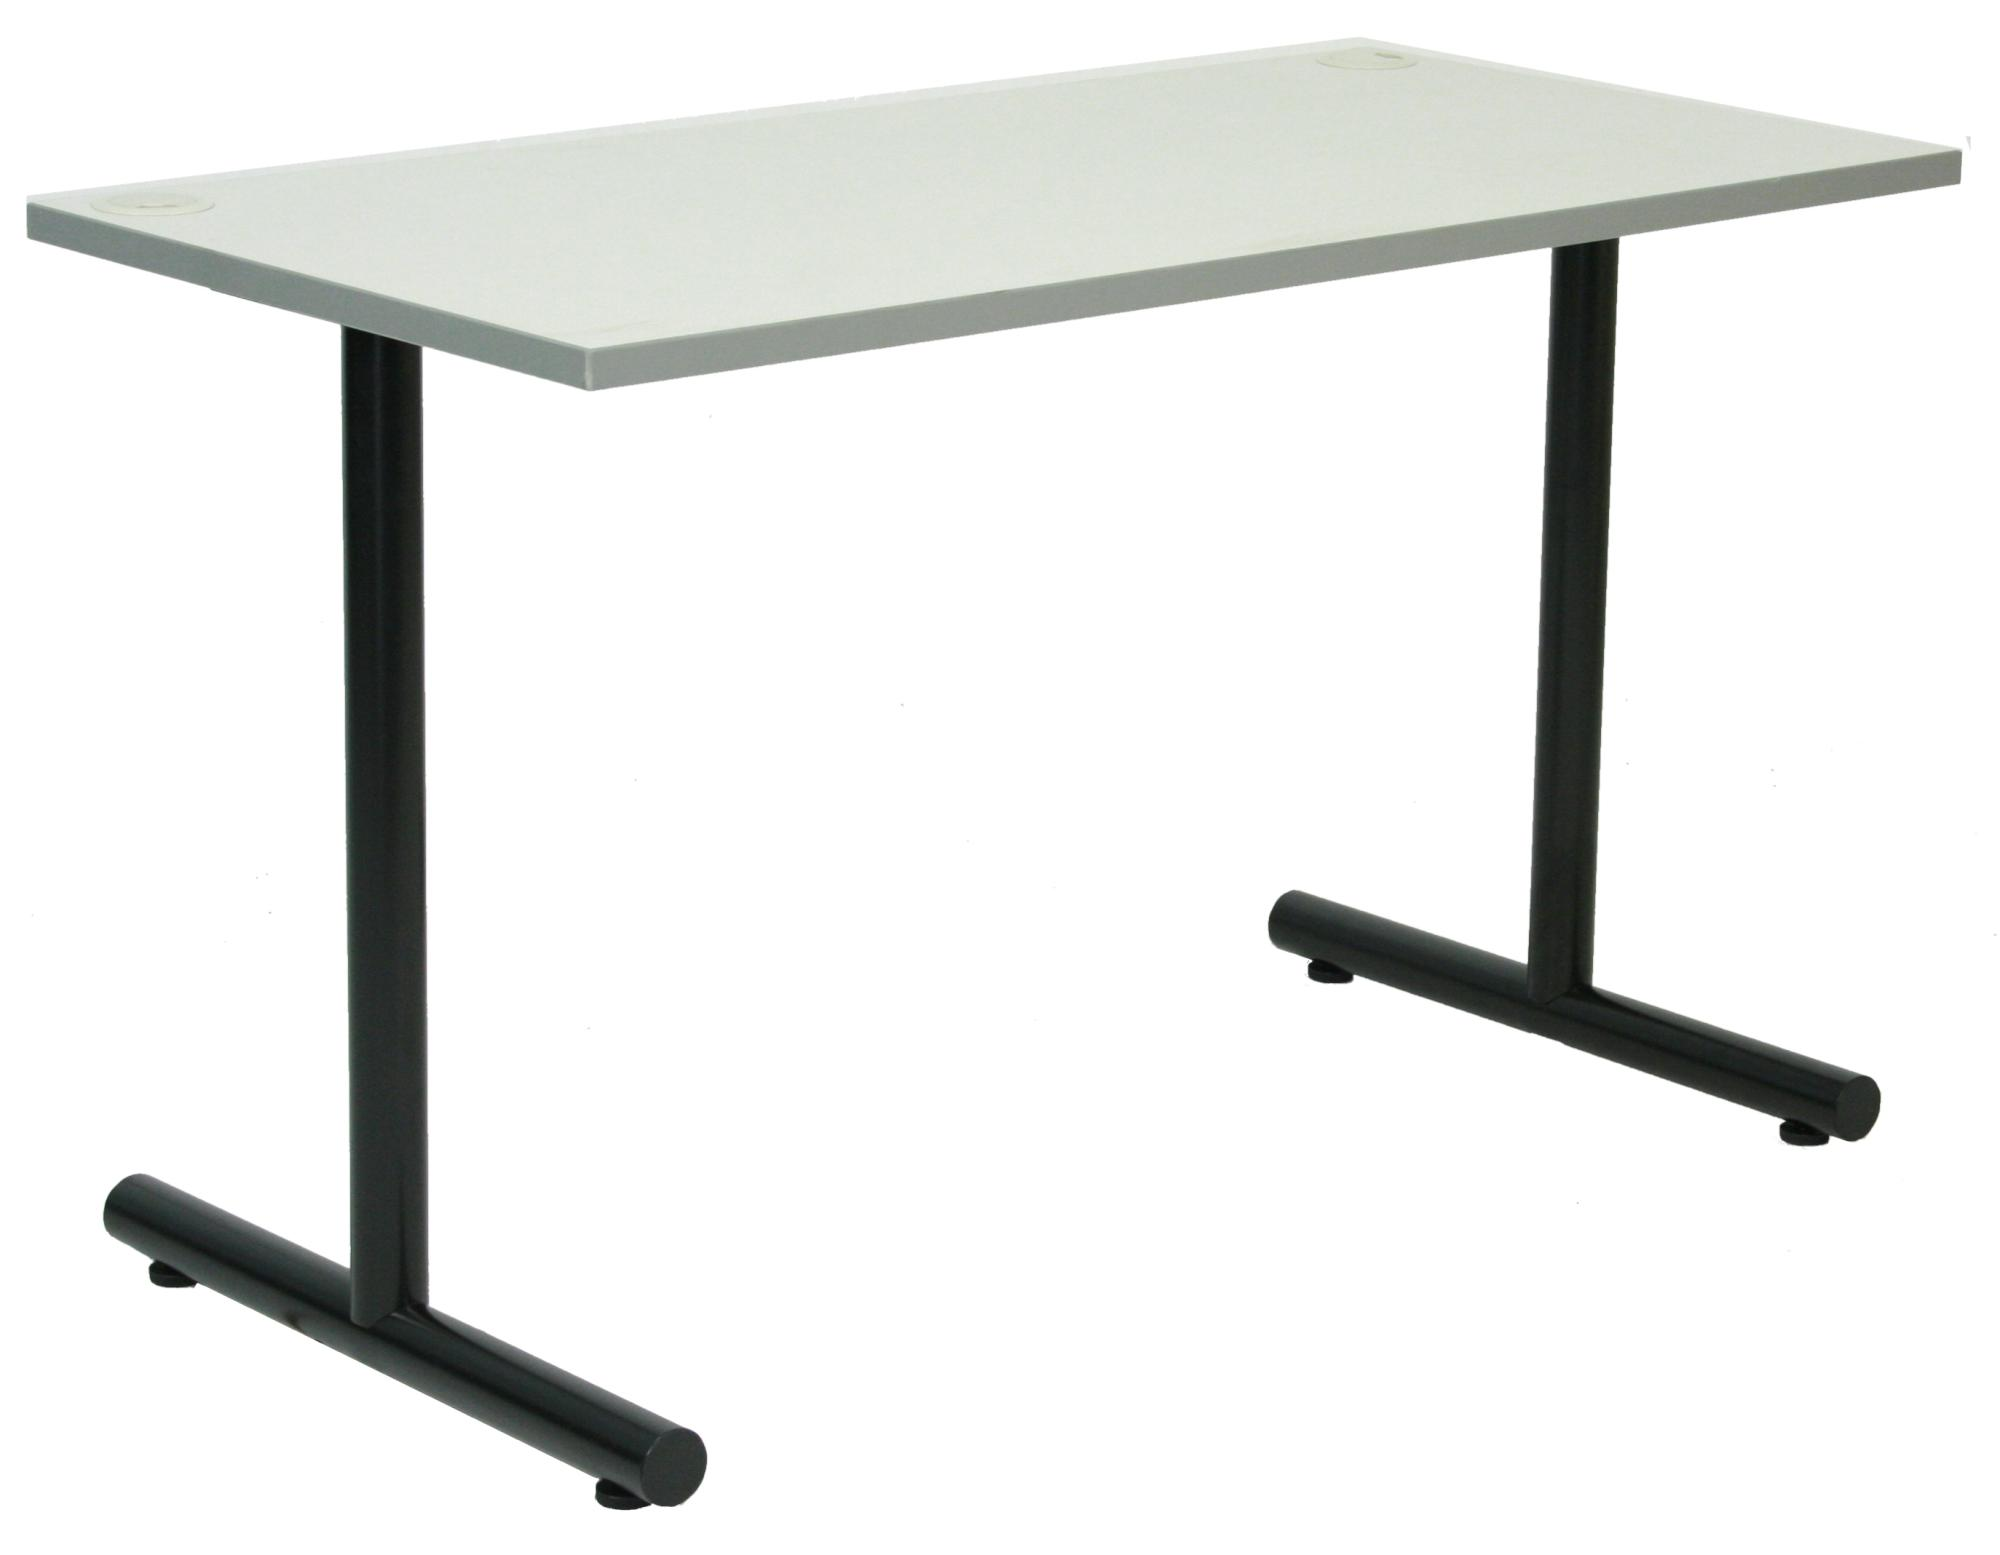 training en high expansion flip product b tables table top multipurpose by from teknion architonic